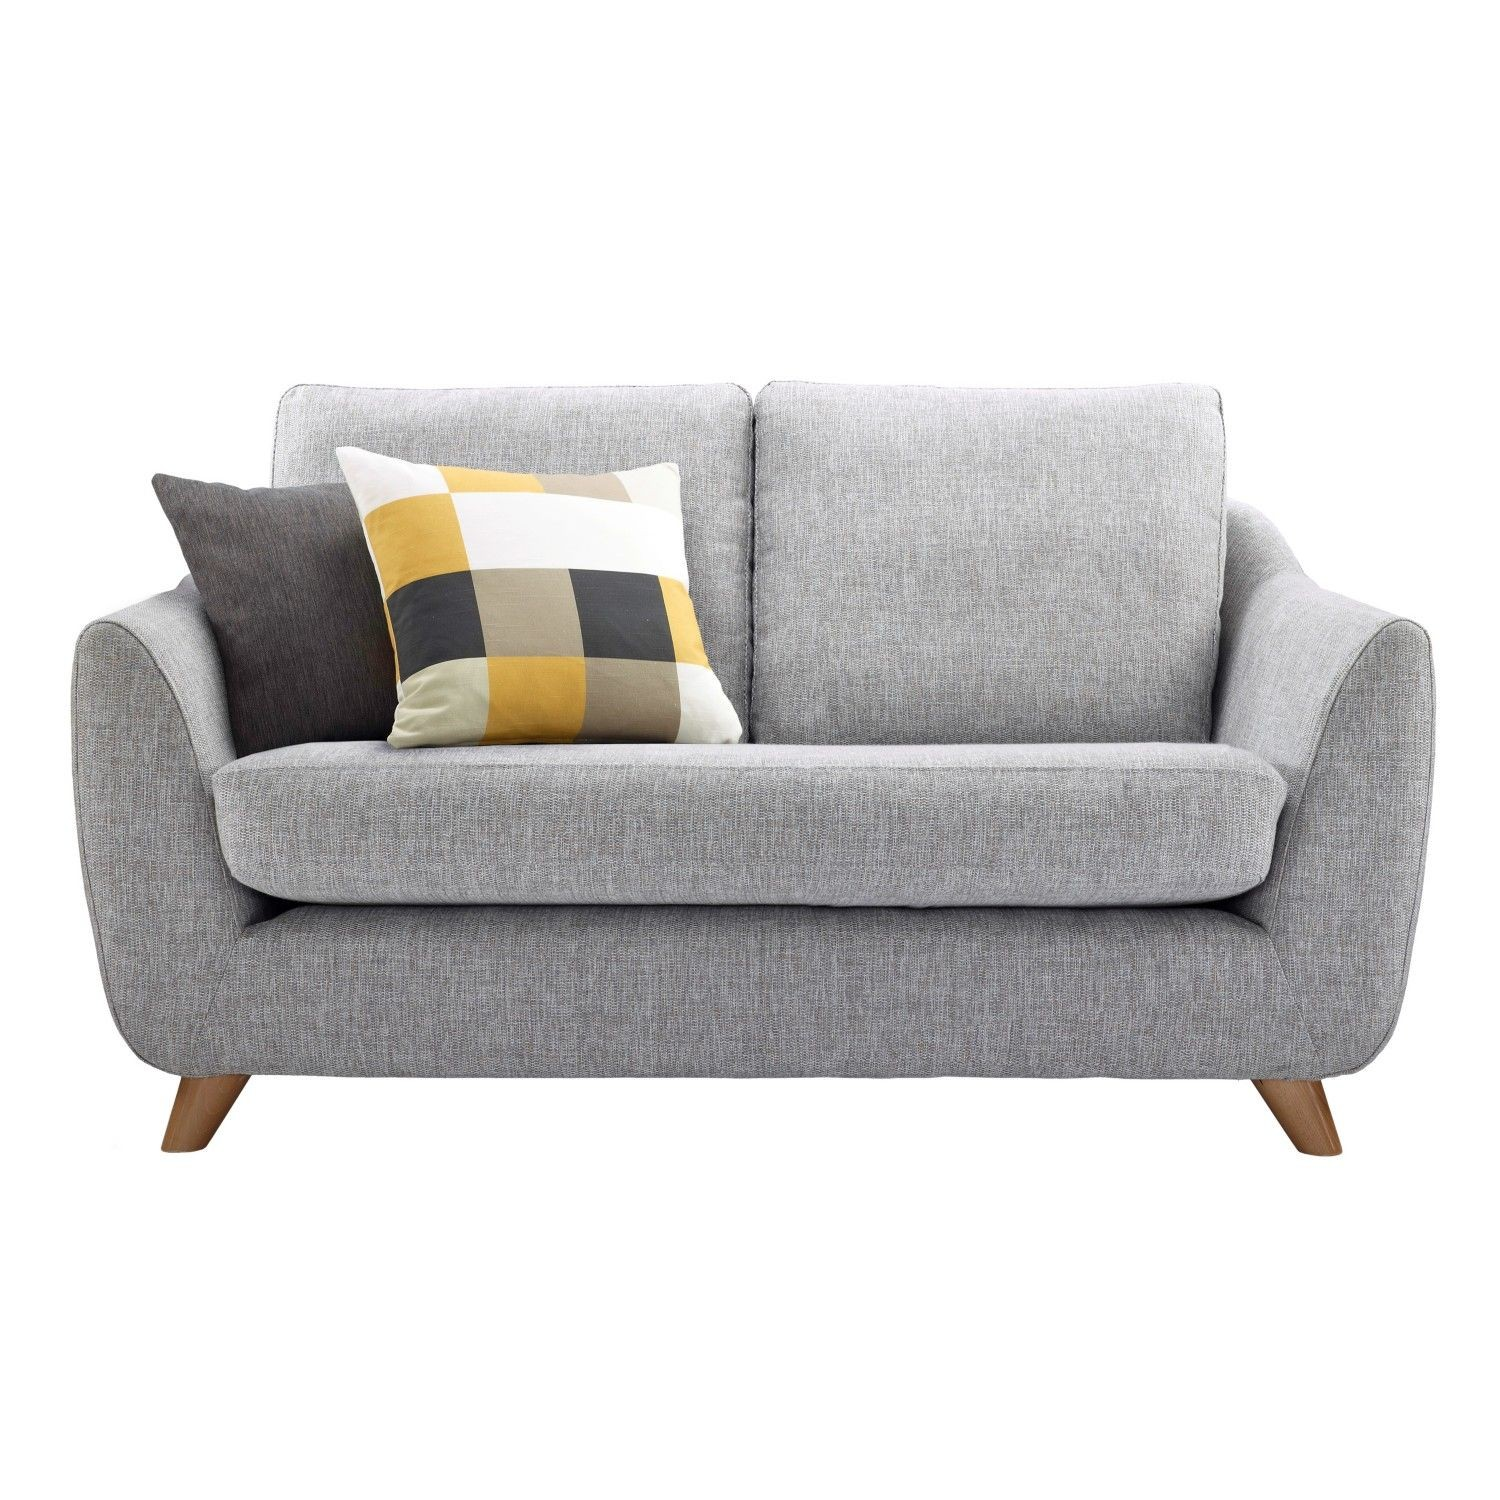 Sofas for Small Rooms Modern Loveseats for Small Spaces Design